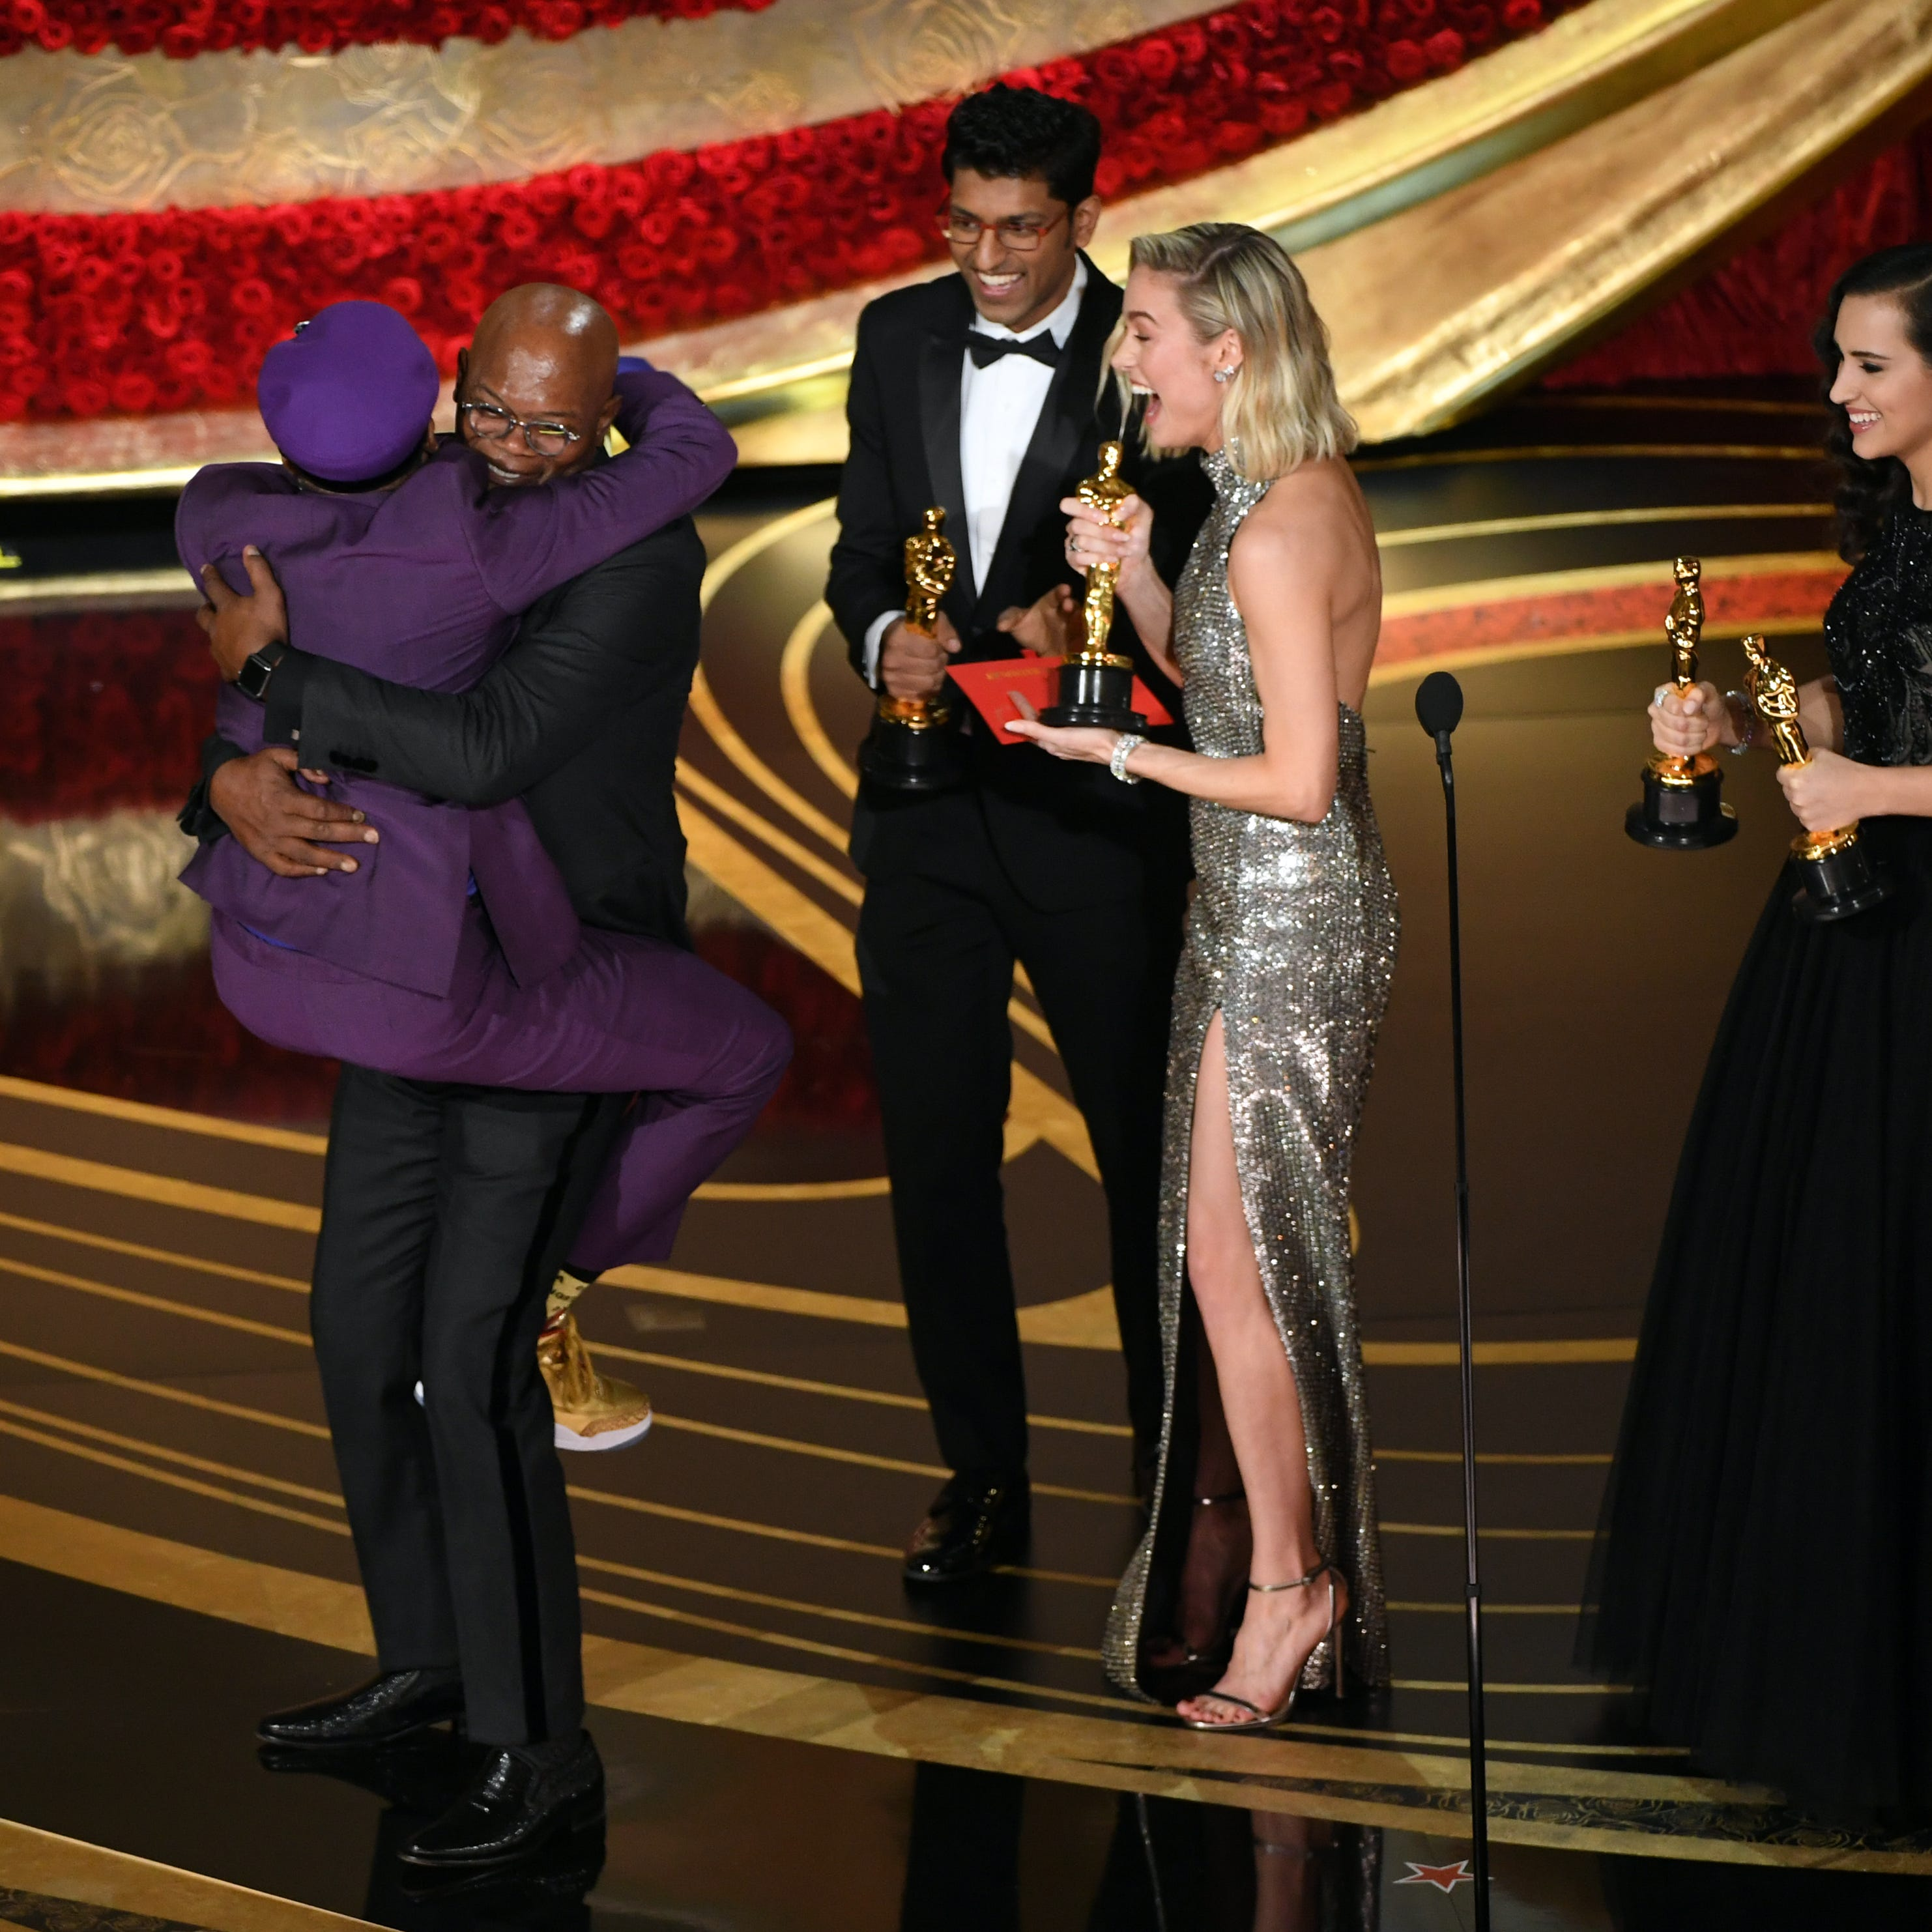 Opinion: The story behind how my son won the Oscar